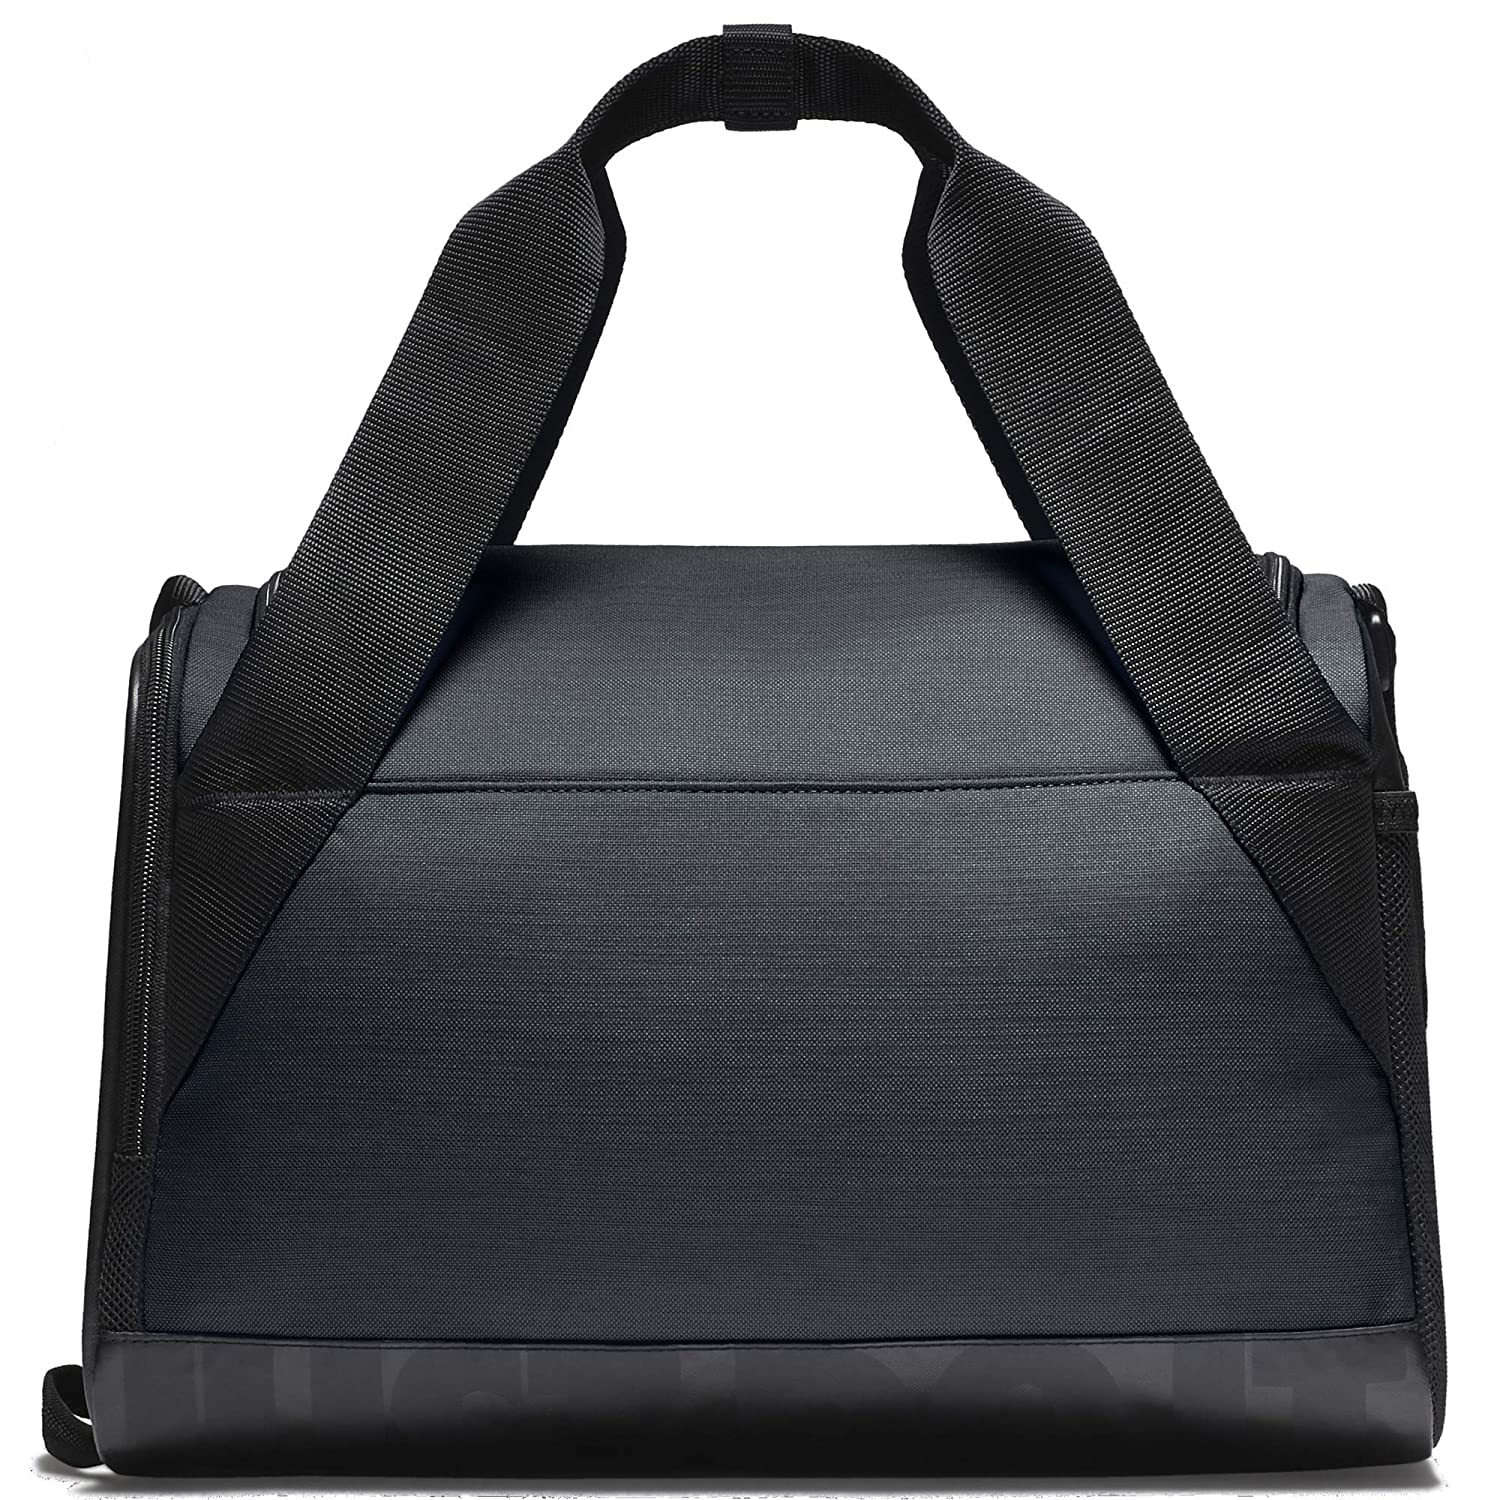 a11119d7553a9f Nike Men s Nk Brsla Xs Duff Sports Bag  Amazon.co.uk  Sports   Outdoors